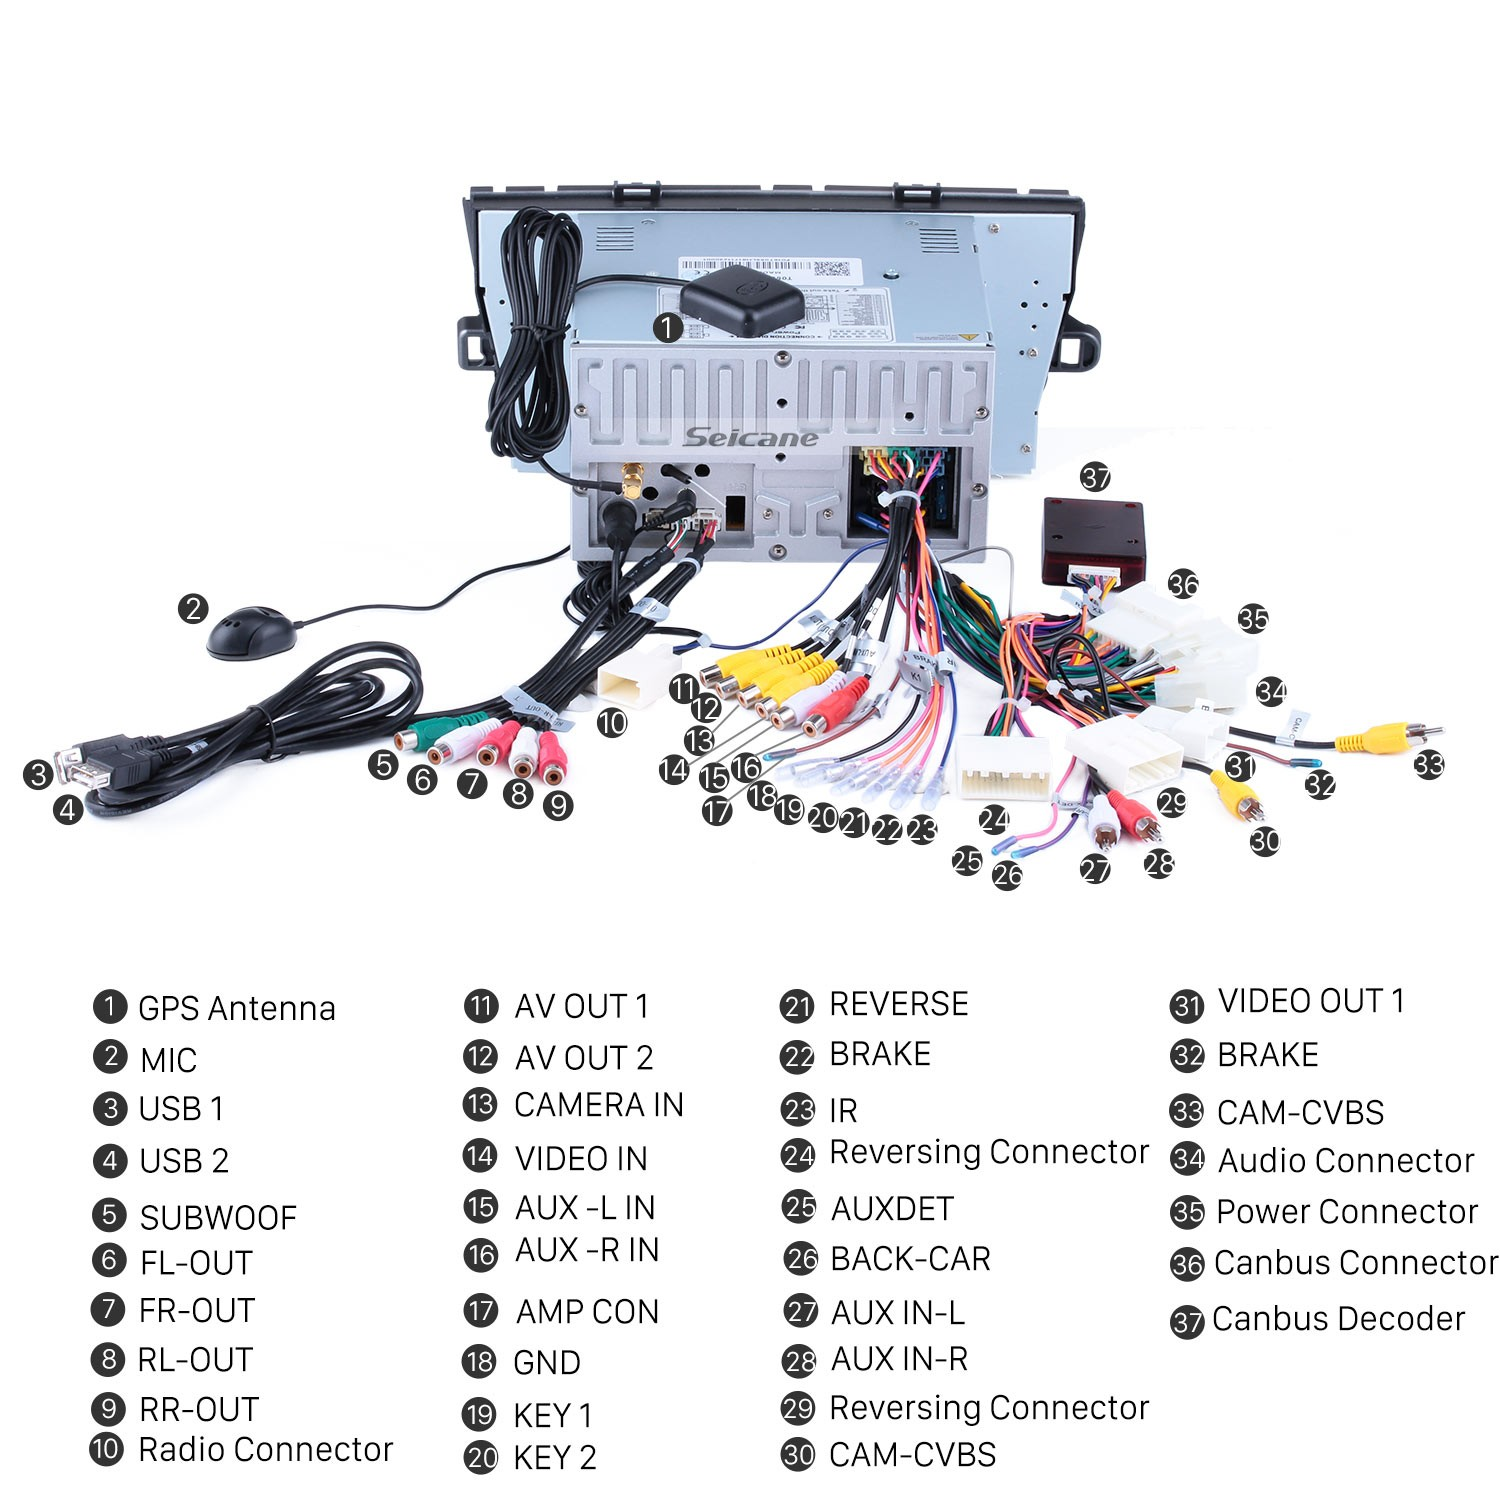 2010 toyota prius wiring diagram - wiring diagram week-pure -  week-pure.lechicchedimammavale.it  lechicchedimammavale.it